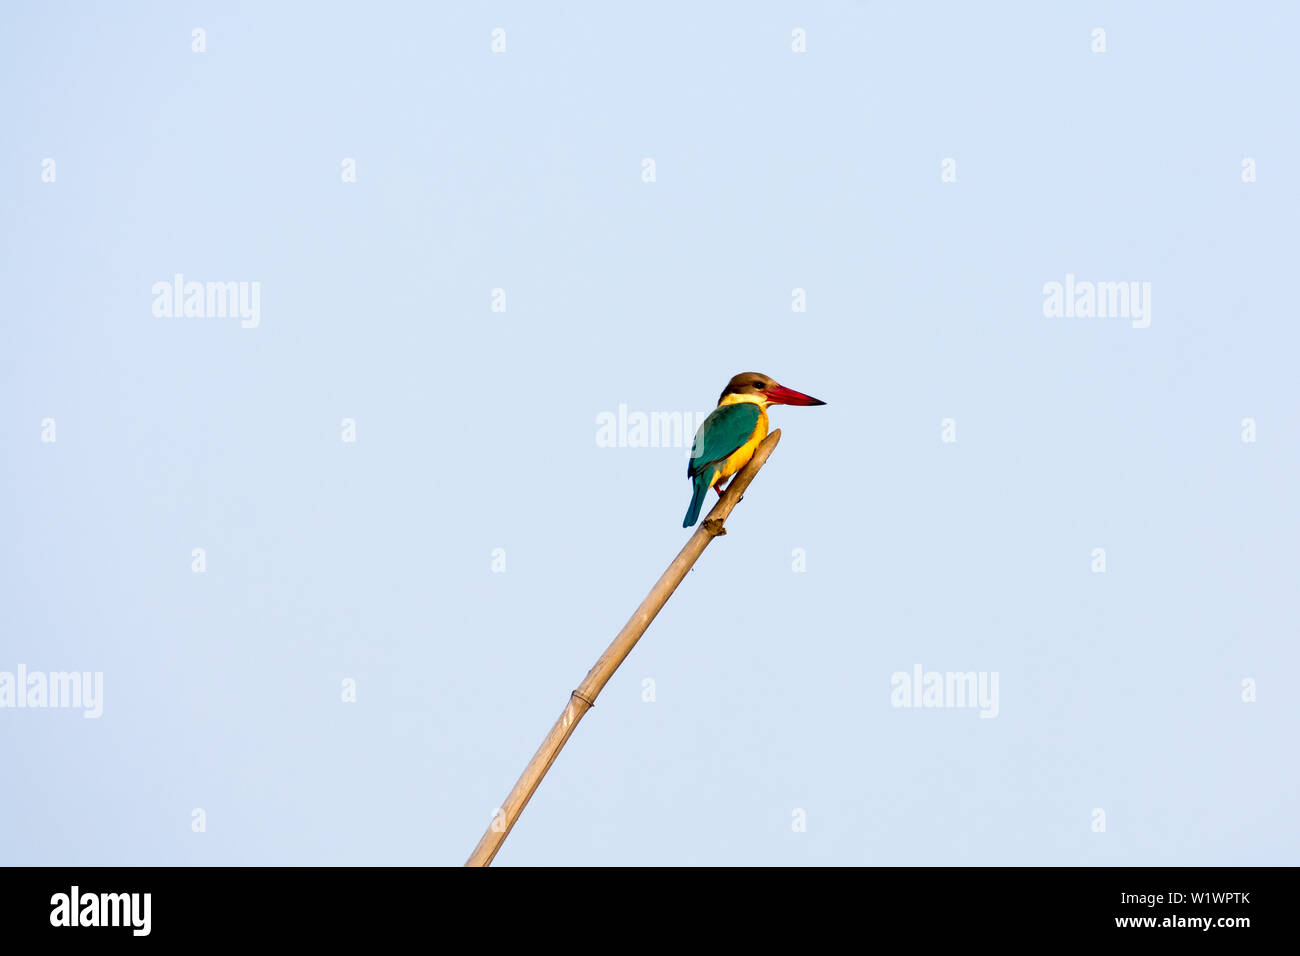 Closeup of a medium sized colorful solitary Kingfisher (Alcedo atthis) Sitting on a Bamboo waiting to catch a fish against clear sky. Bharatpur Bird S - Stock Image